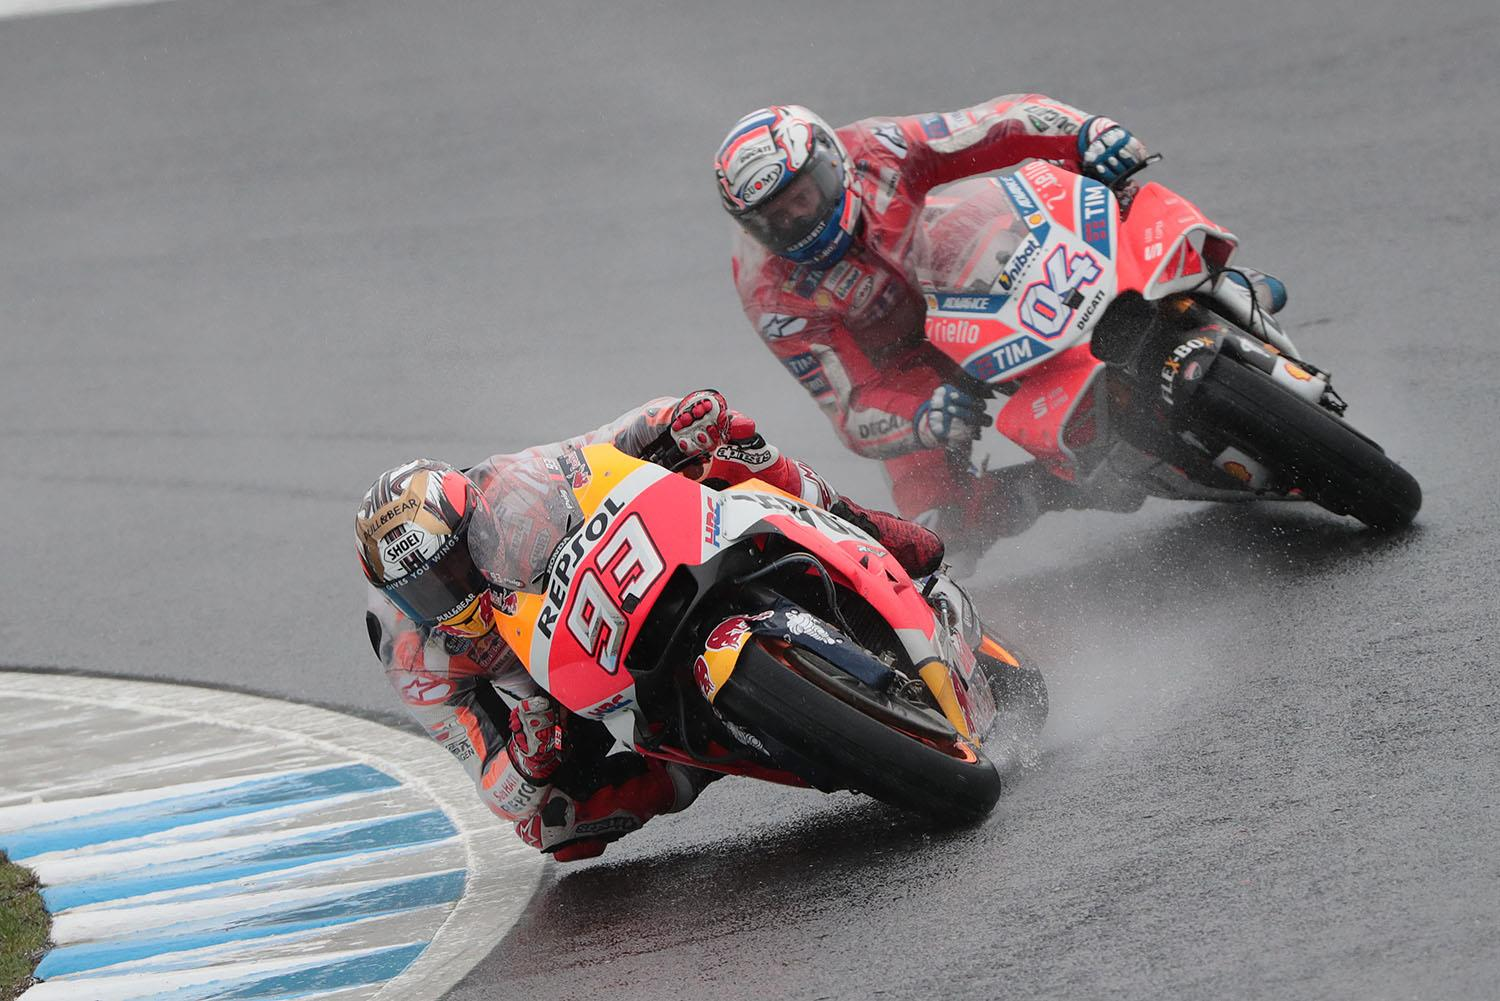 Dovizioso sets Sepang pace come rain or shine